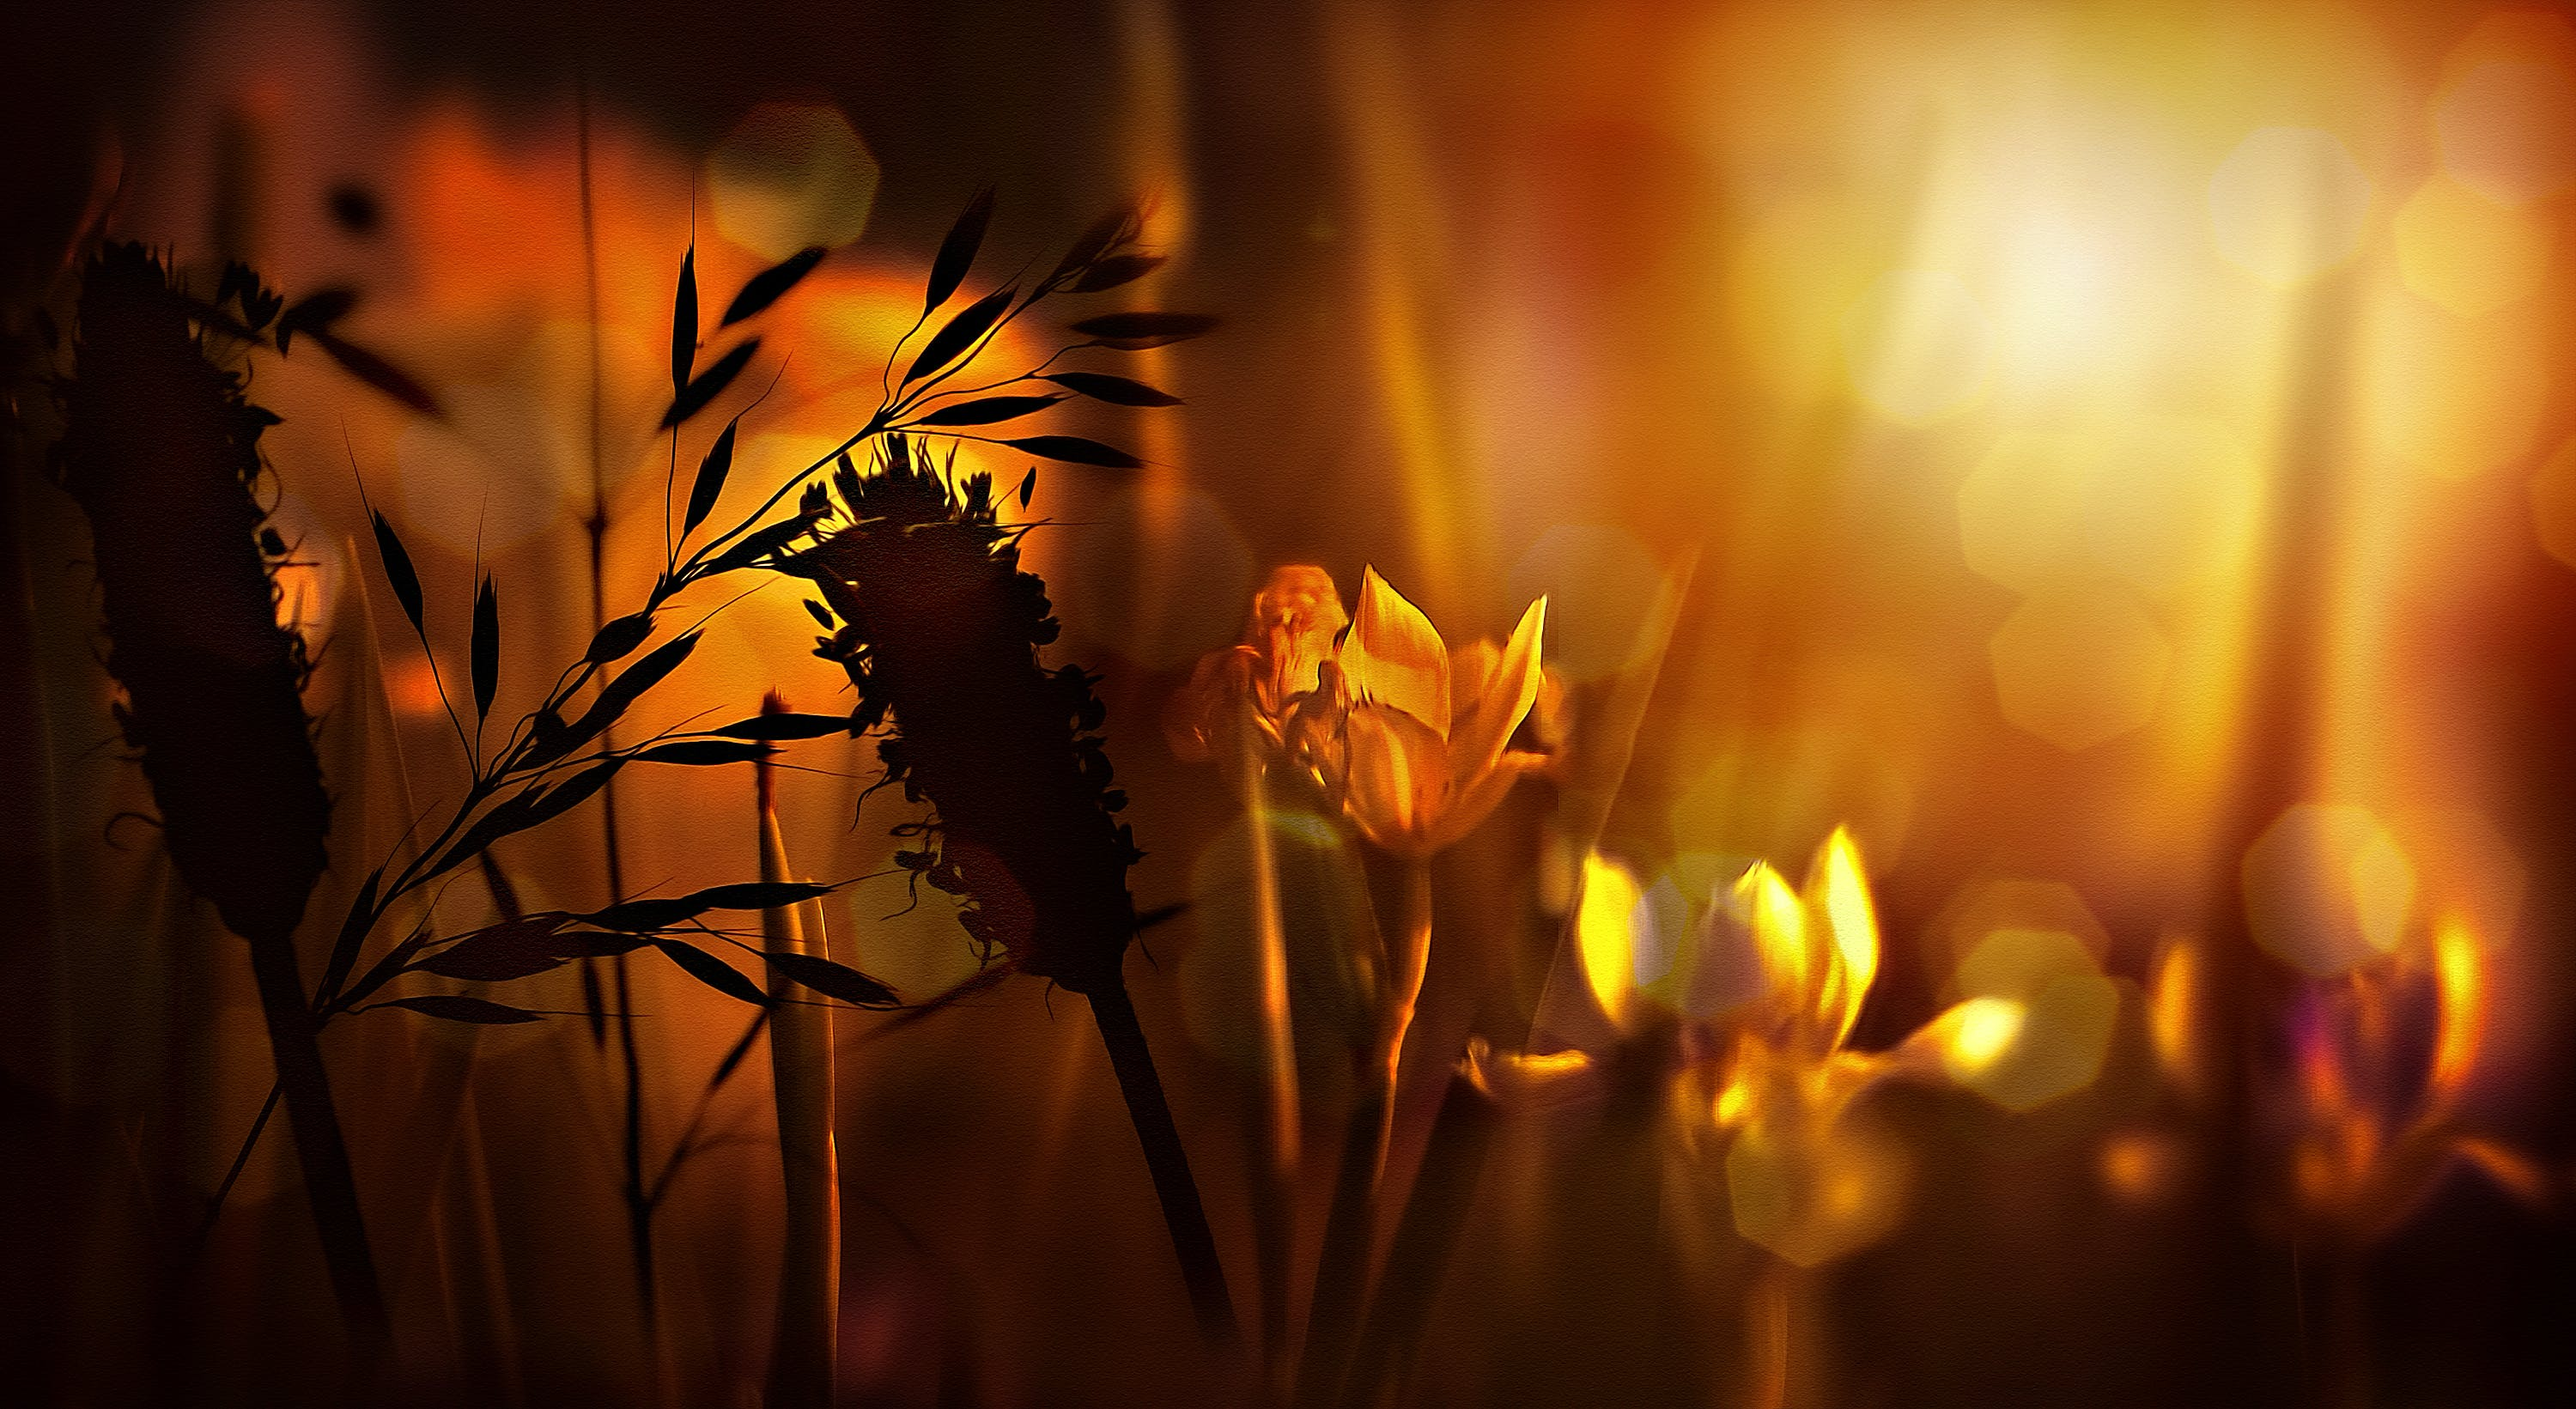 Bokeh Photography of Flowers